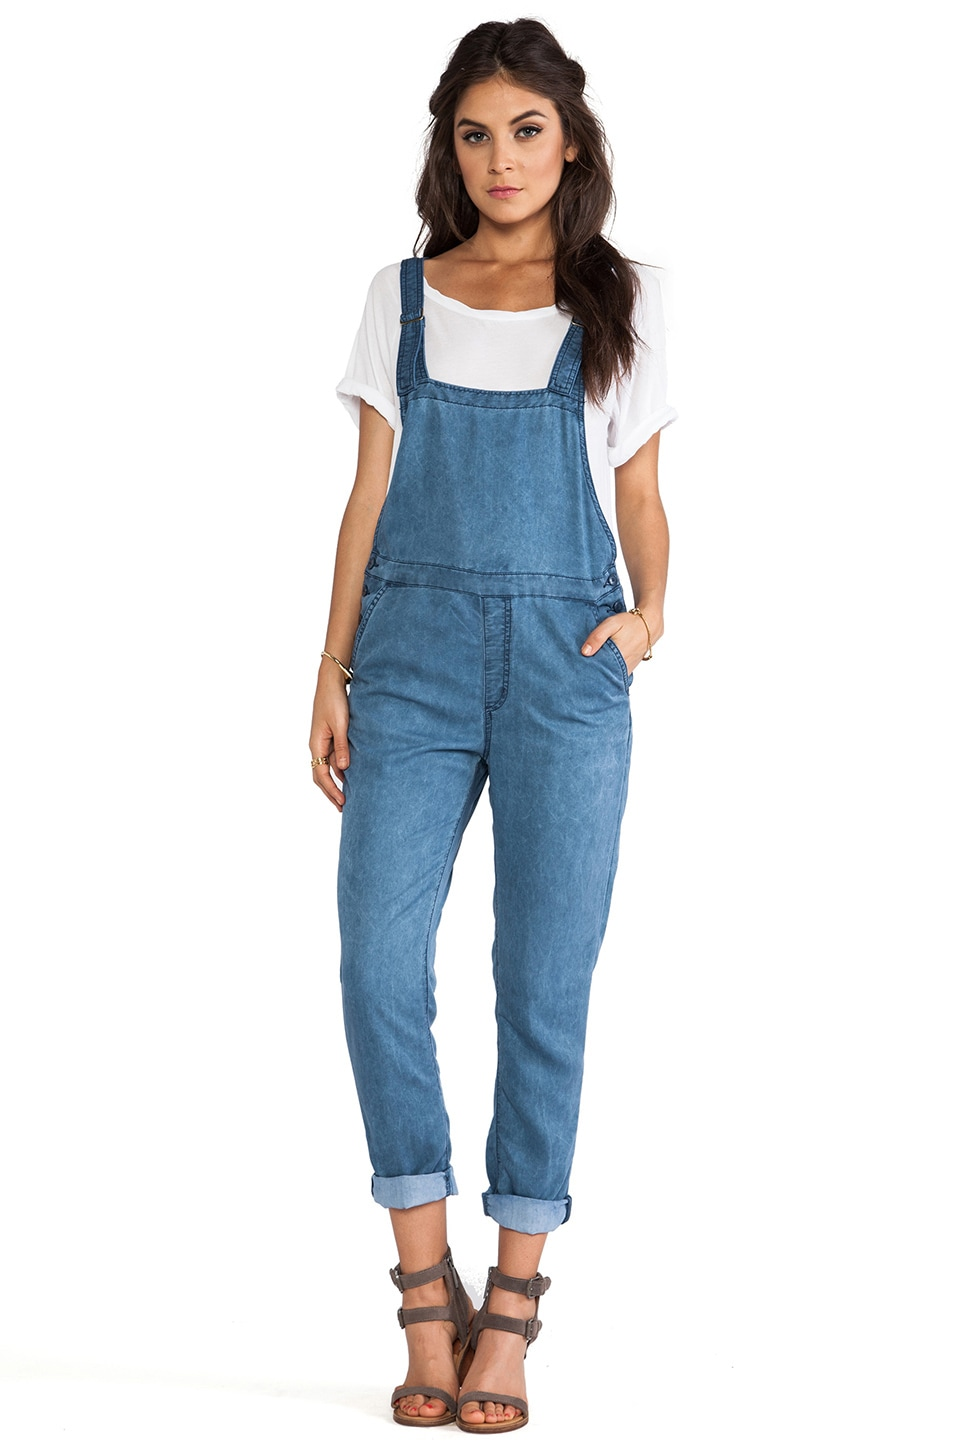 Obey Alexia Overall in Indigo